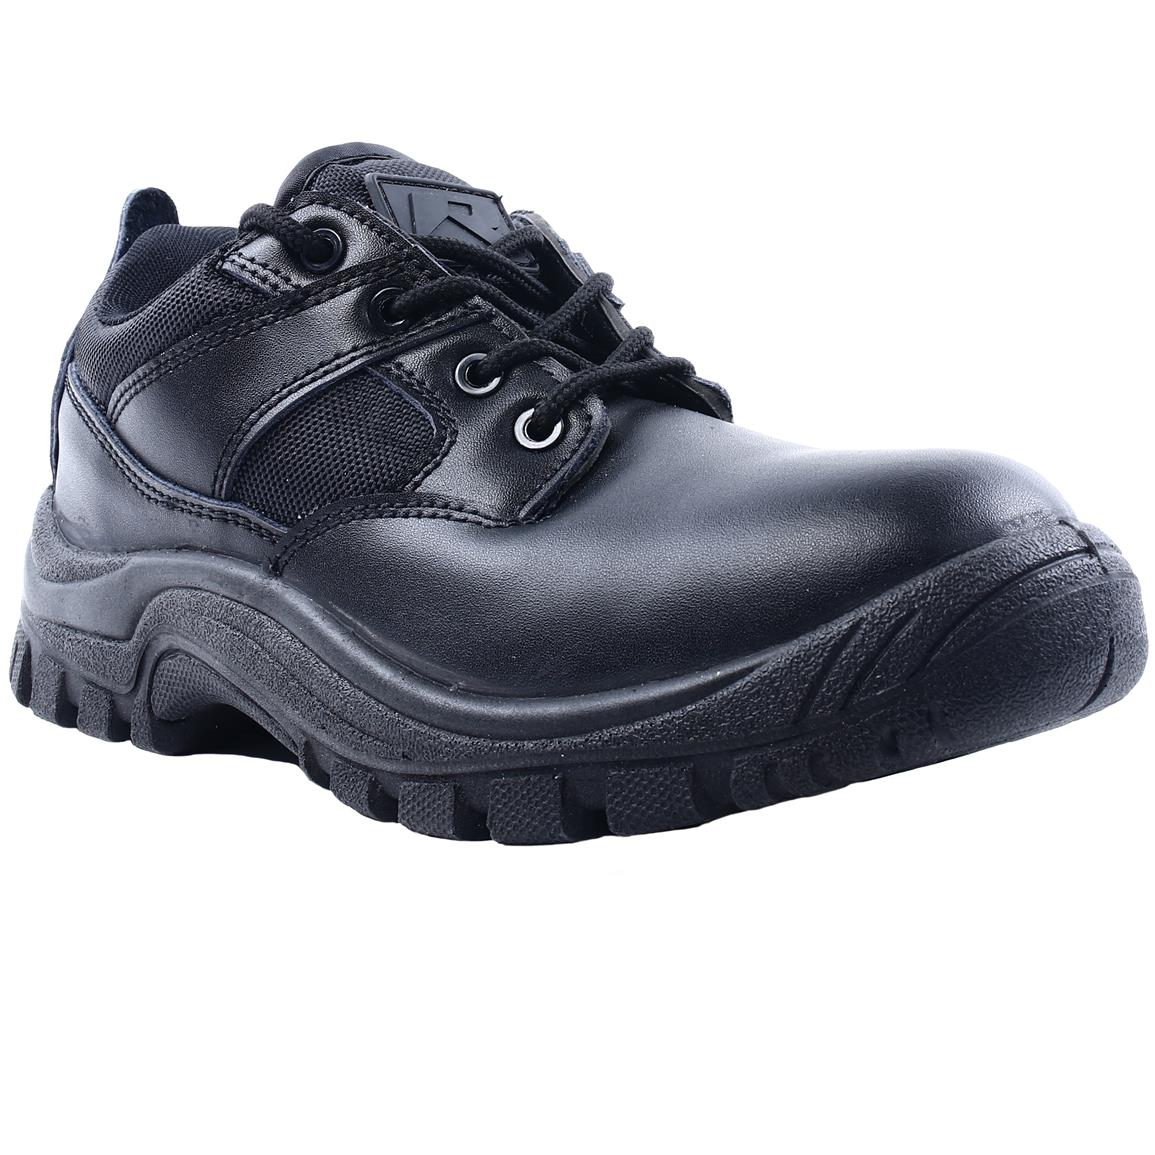 Ridge Outdoors Nighthawk Men's Oxford Shoes, Black